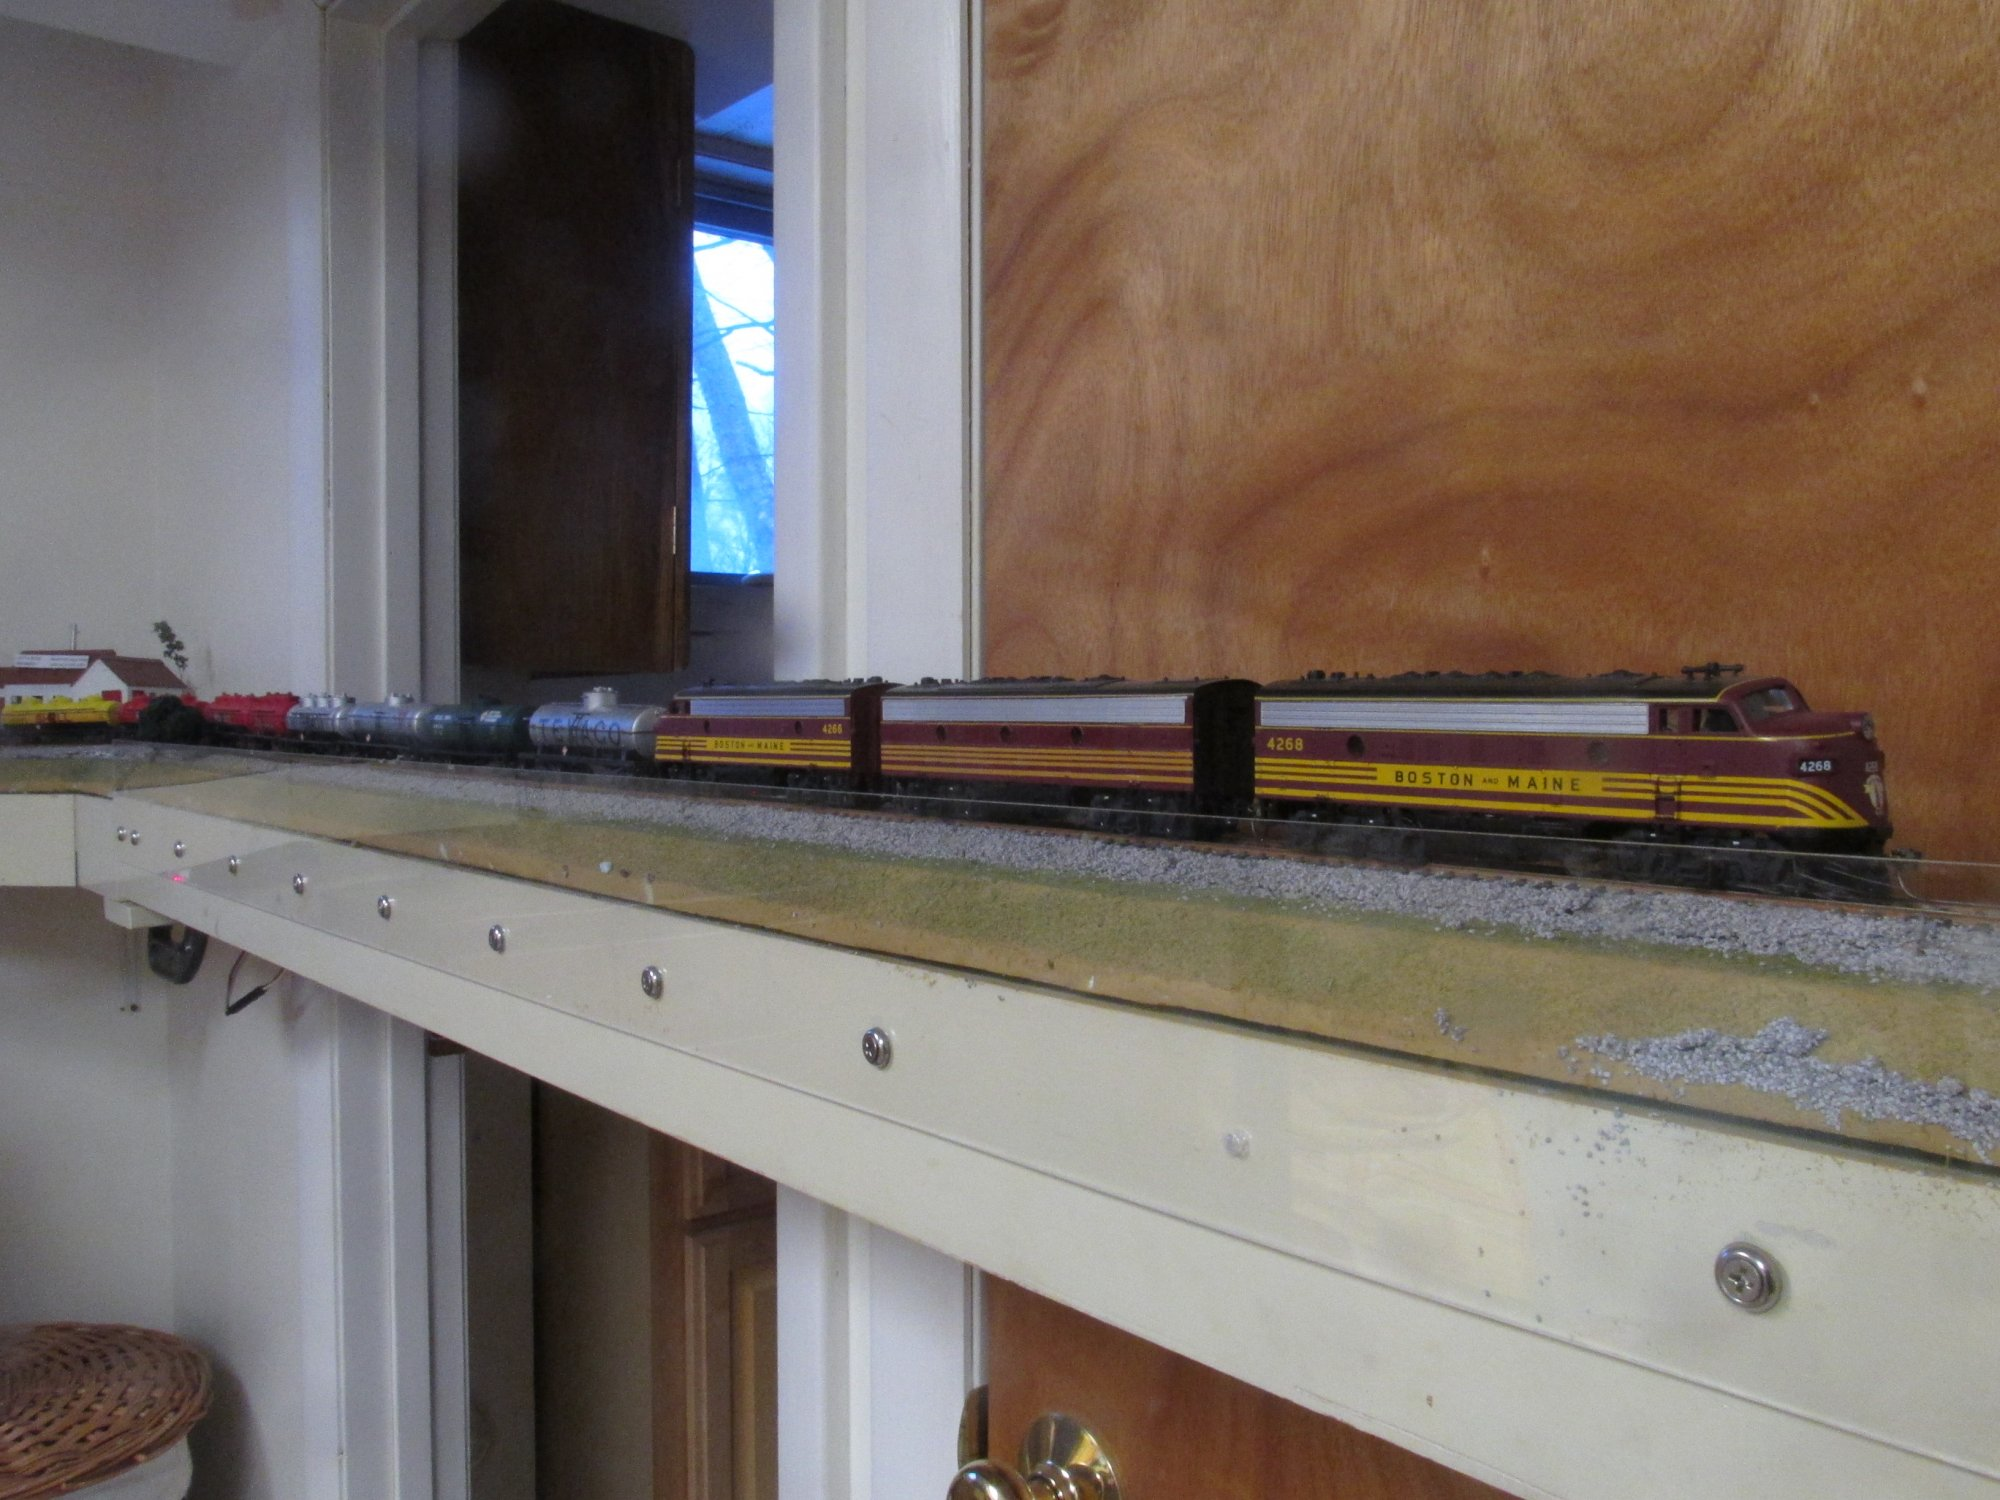 Athearn F7 ABA lashup on point of unit tank car train on the bathroom straight